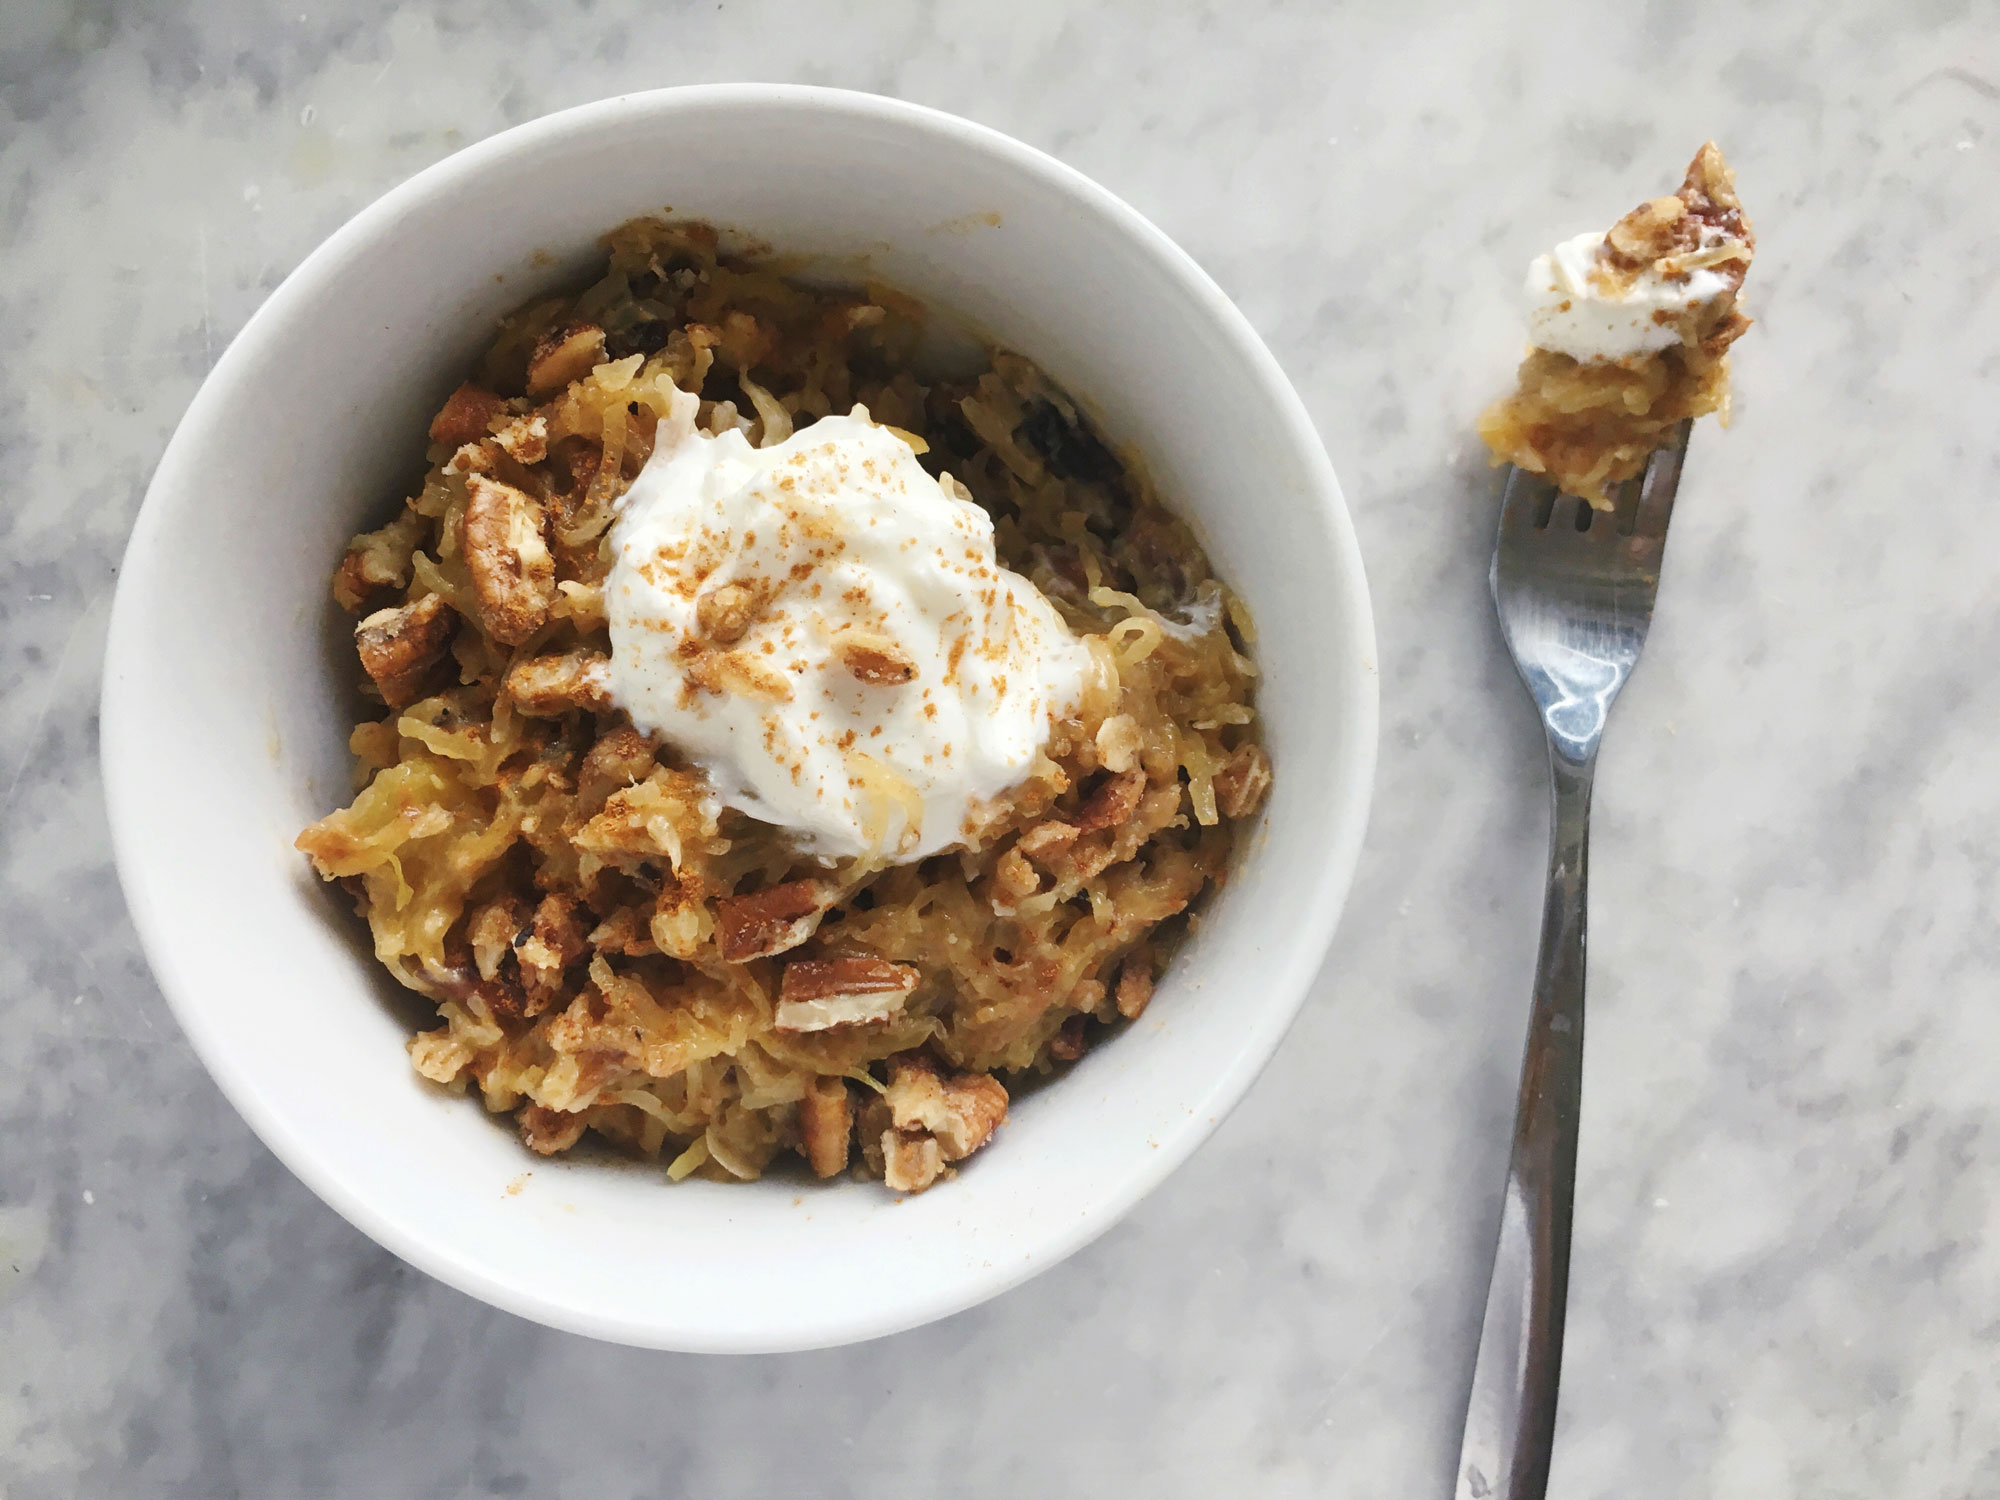 Sweet Spaghetti Squash Noodles with Toasted Pecan Crumble